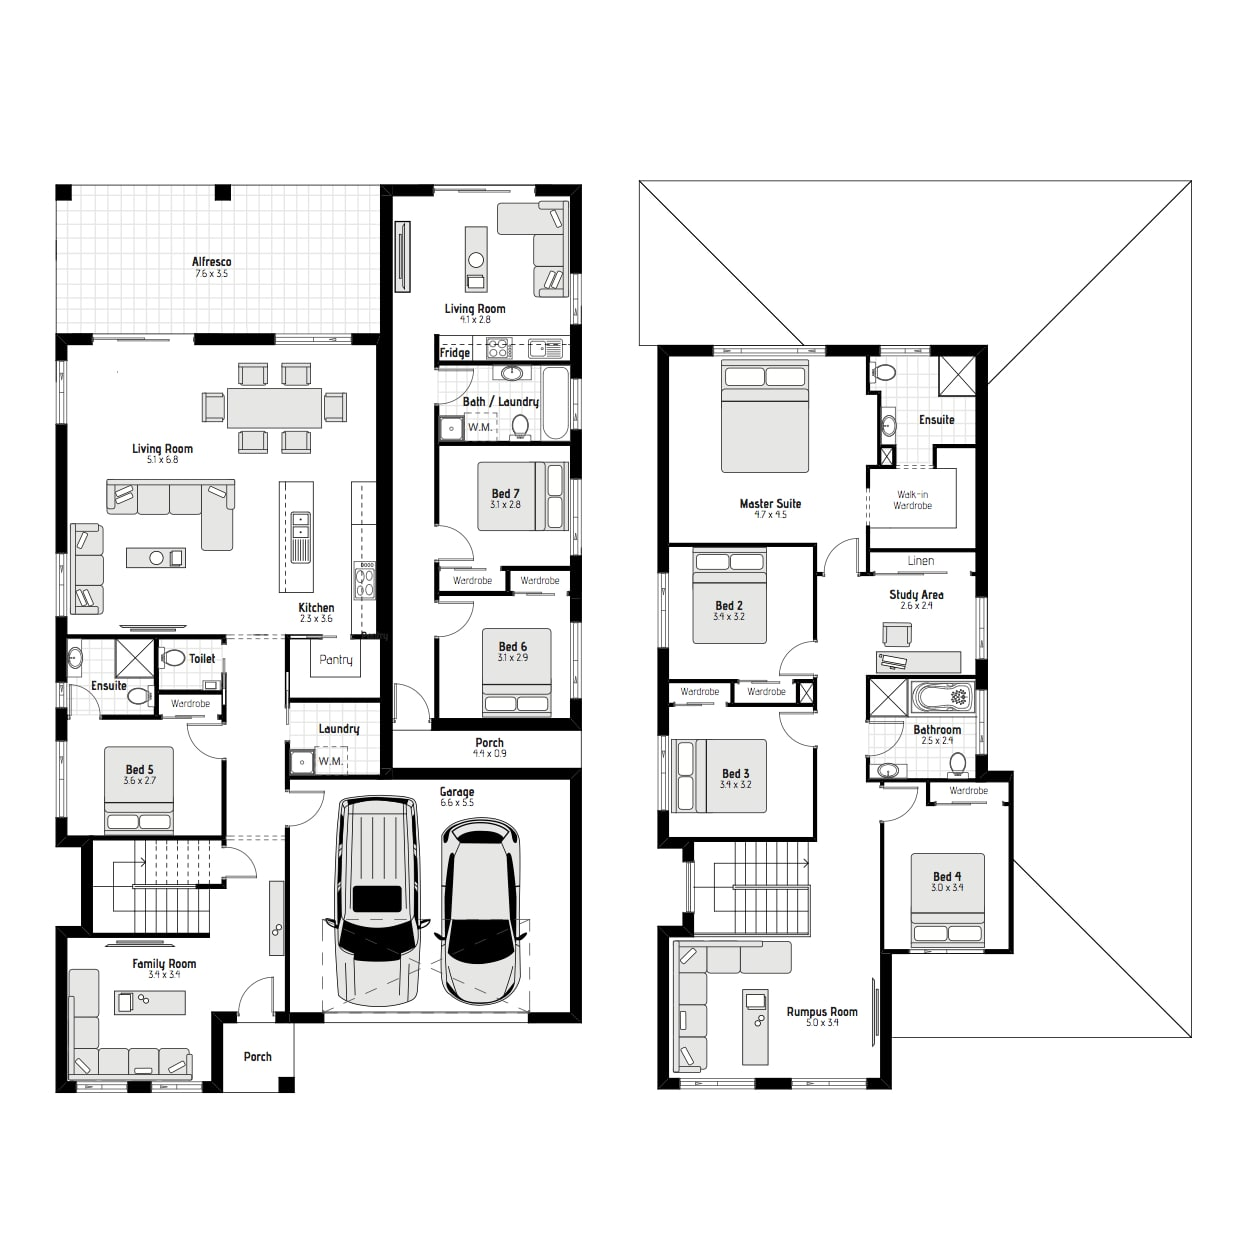 L4632955 BARDEN RIDGE NSW 2234 - Floor plan